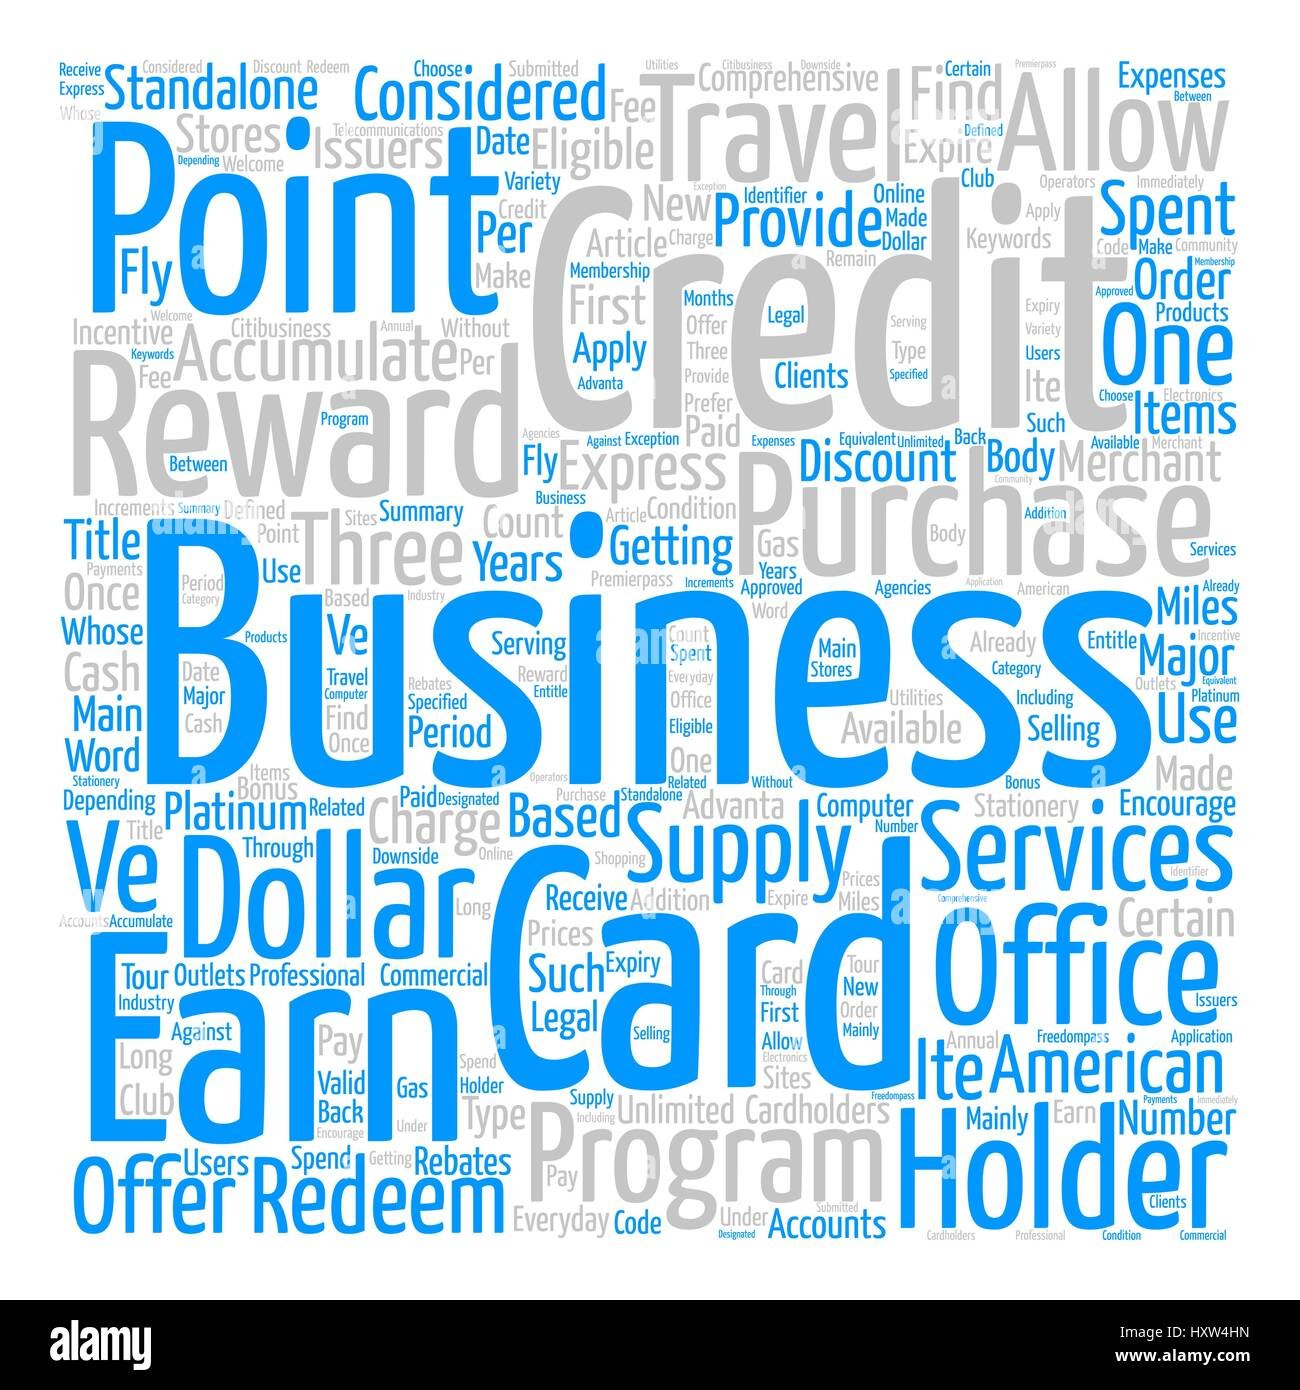 Business Credit Cards With The Best Rewards Programs Choice Image ...